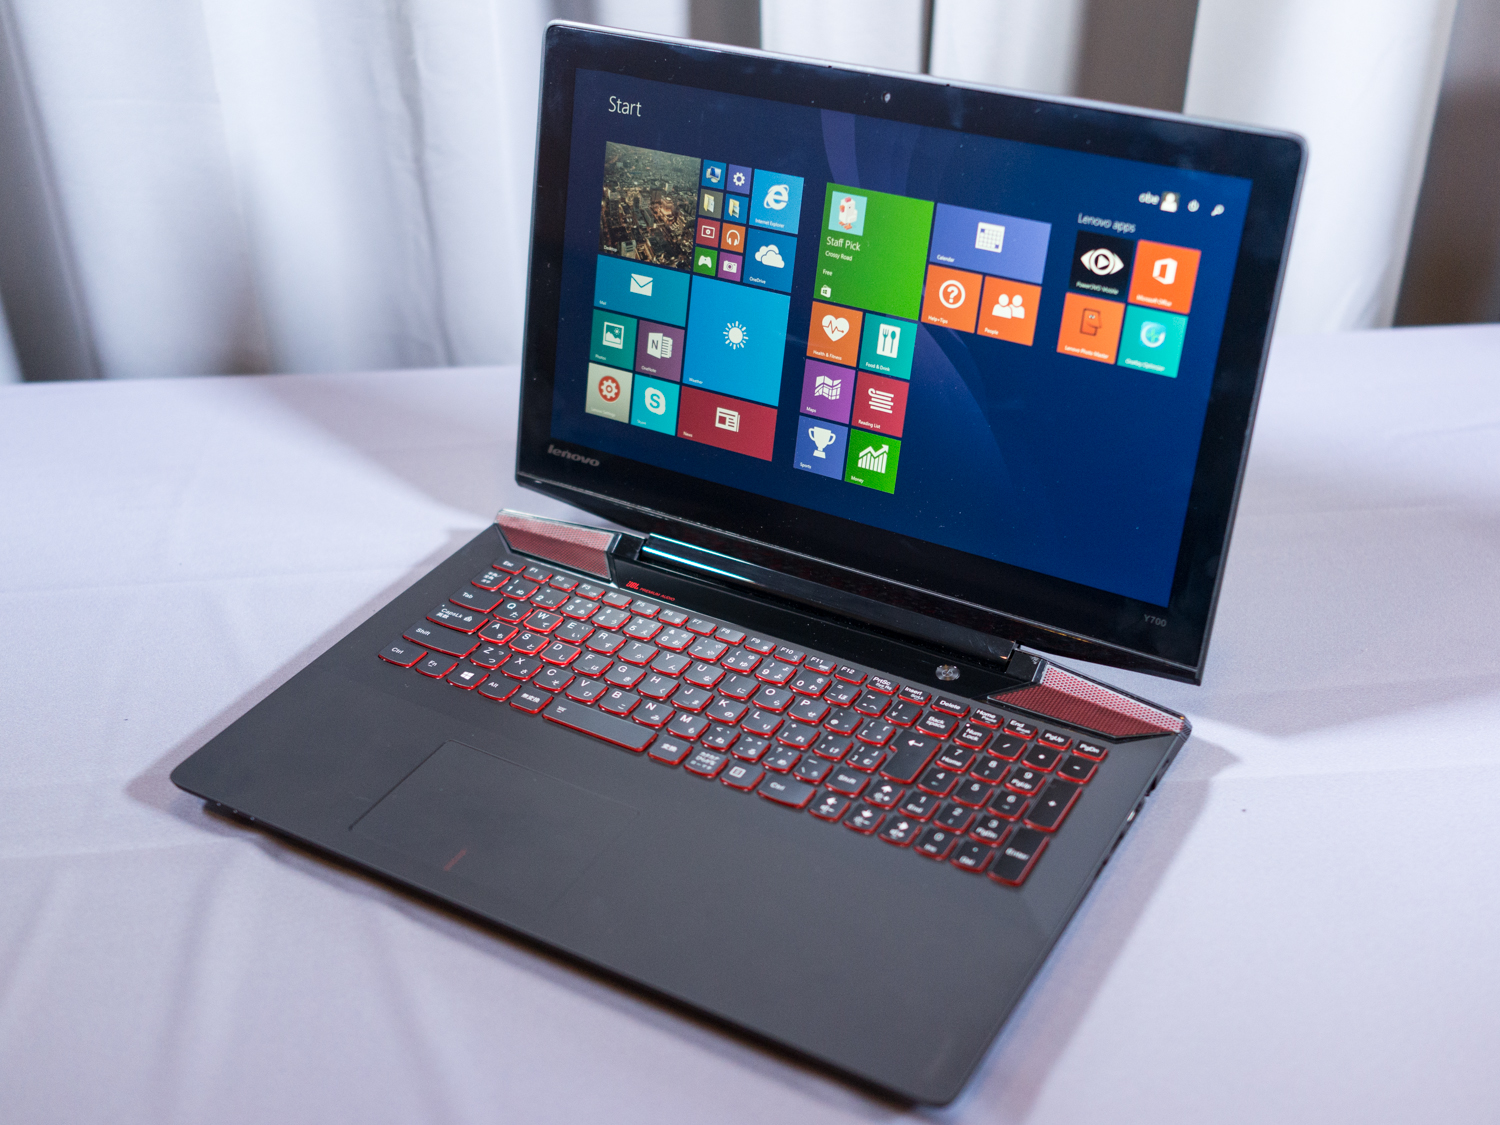 the lenovo ideapad y700 - photo #1